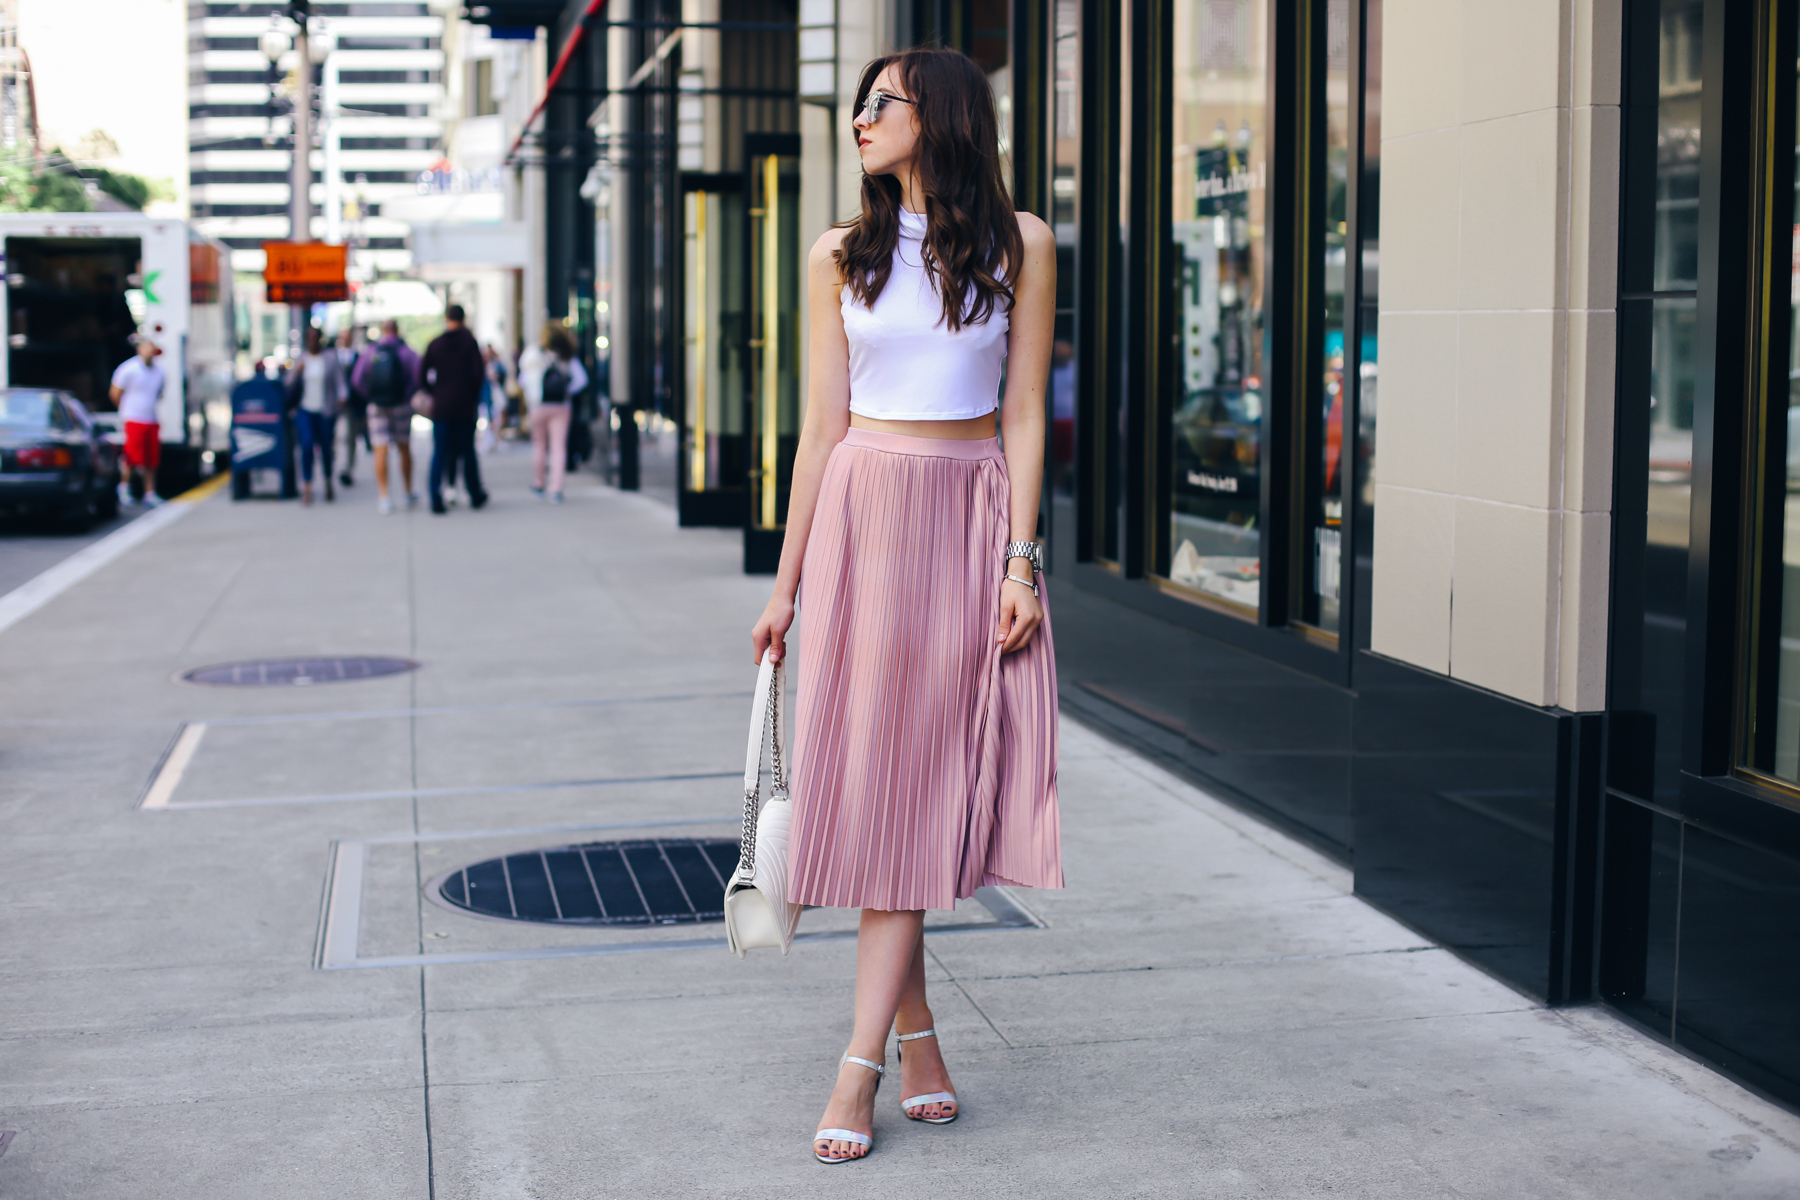 Barbora-Ondracova-FashioninmySoul-Fashion-Blogger-Photography-RyanbyRyanChua-7445